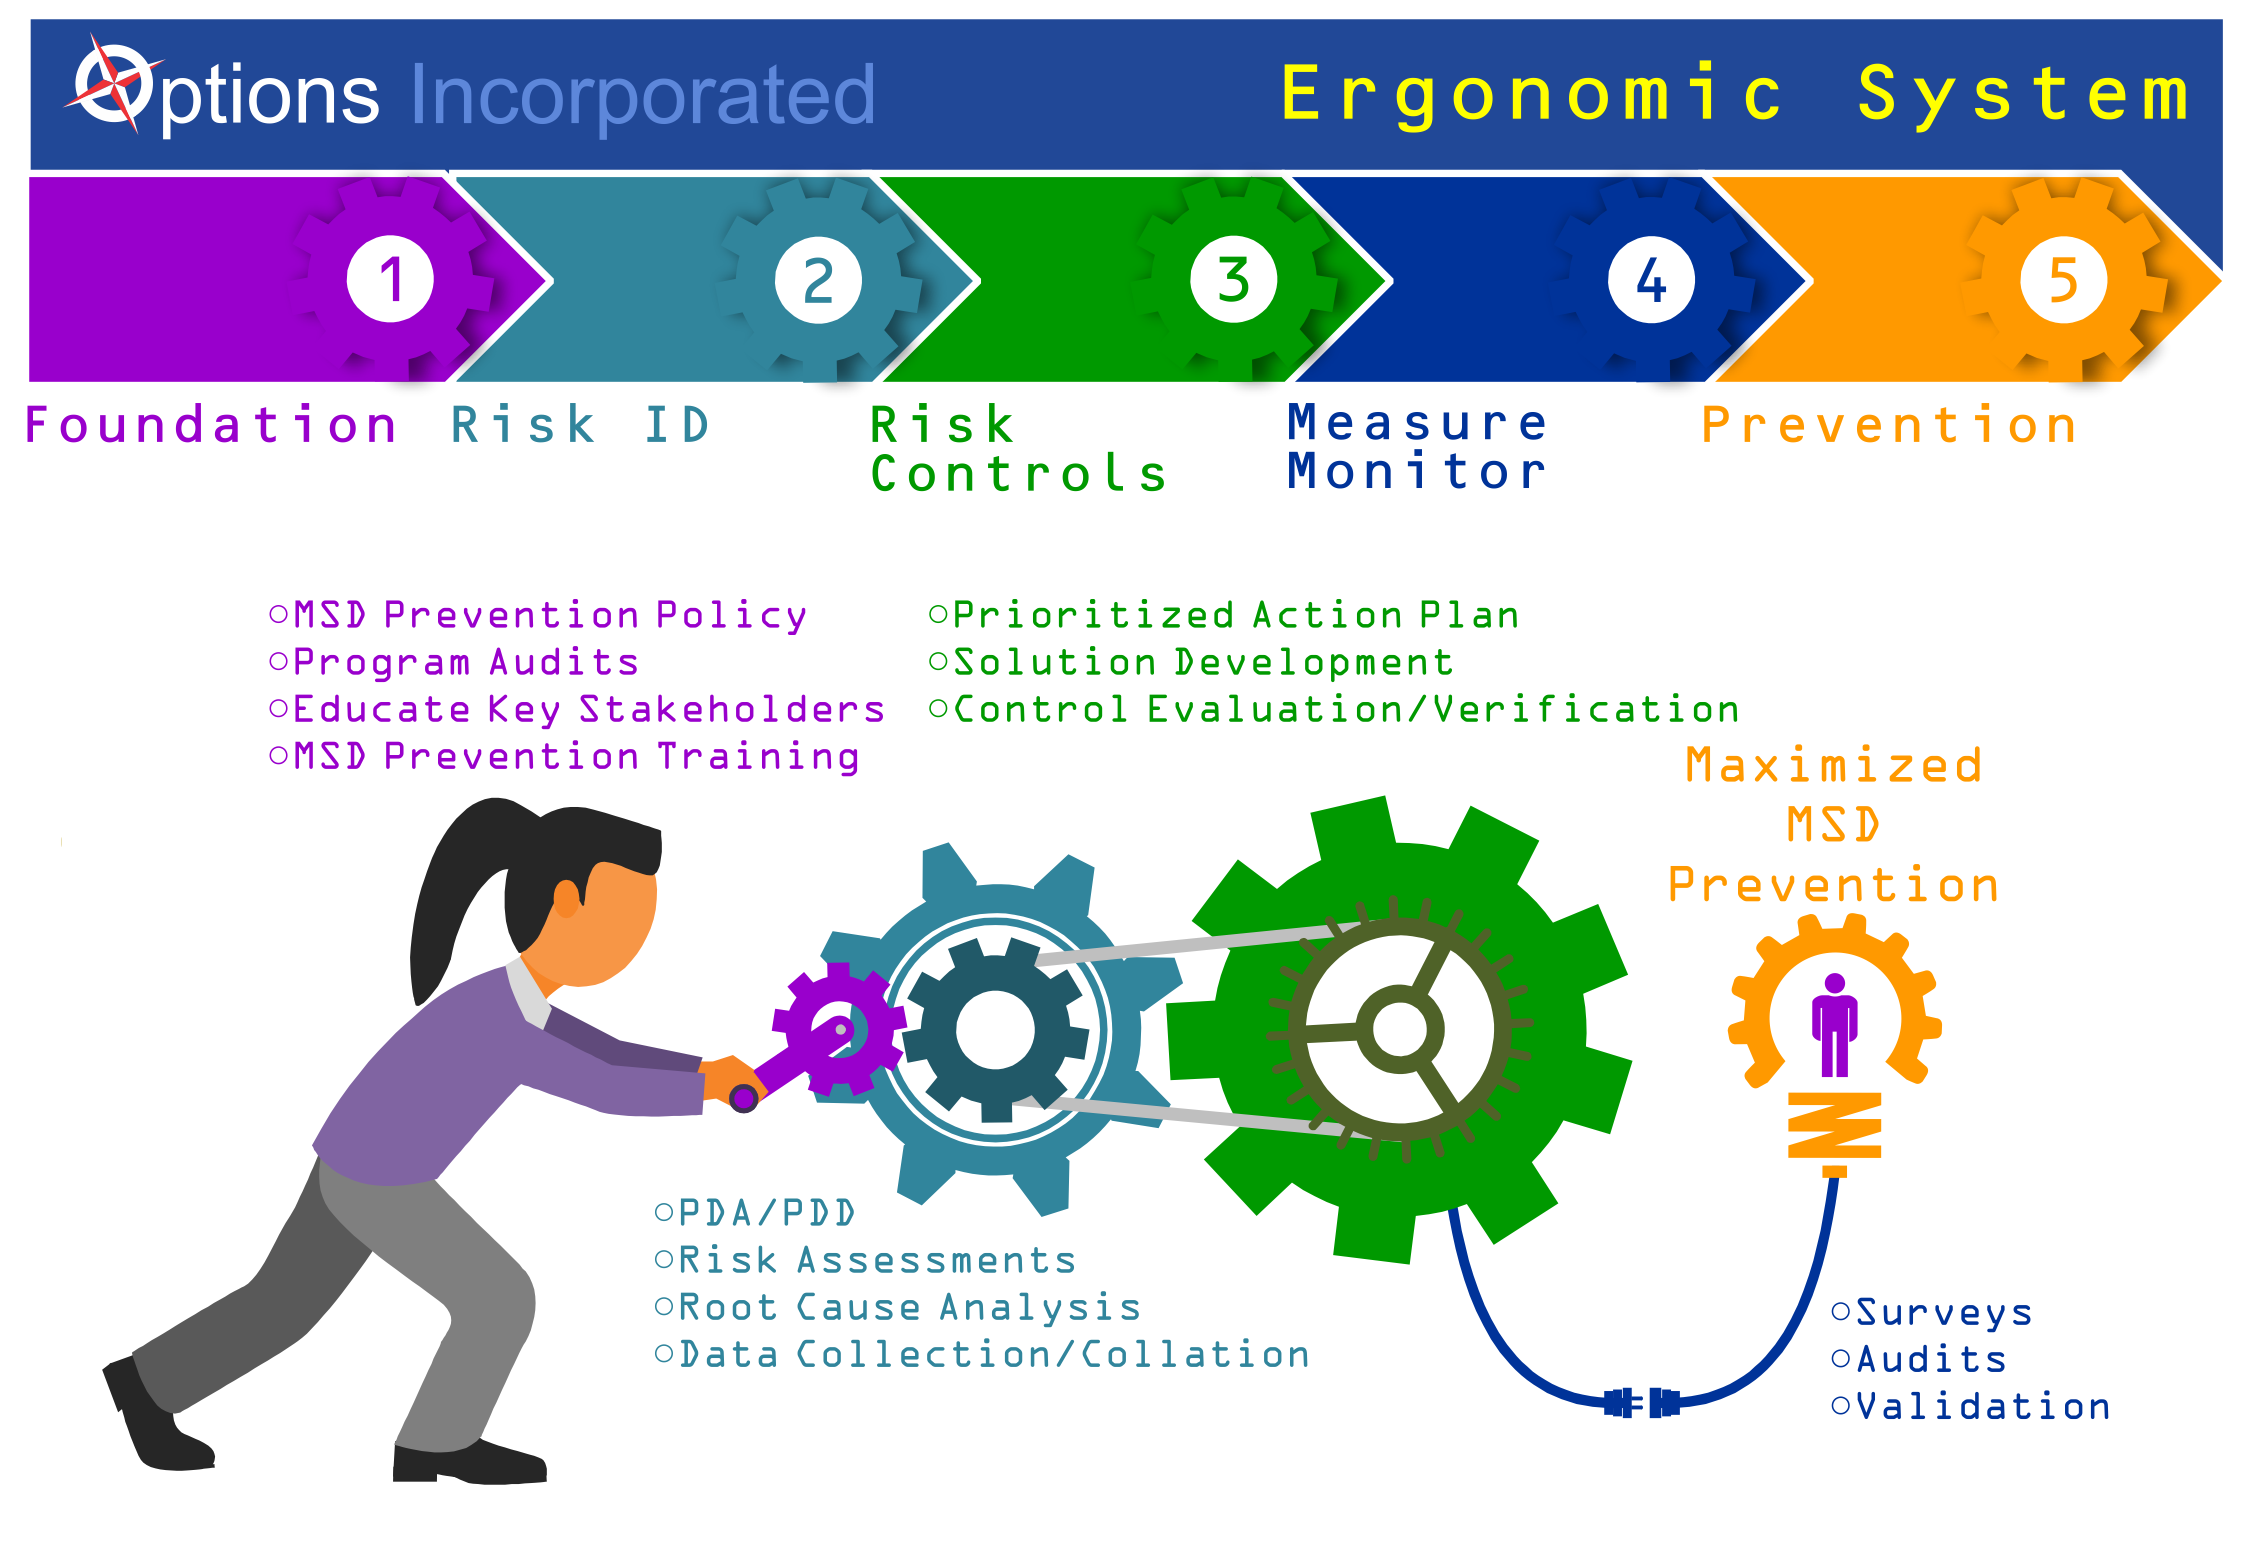 Options Incorporated Ergonomic System Infographic